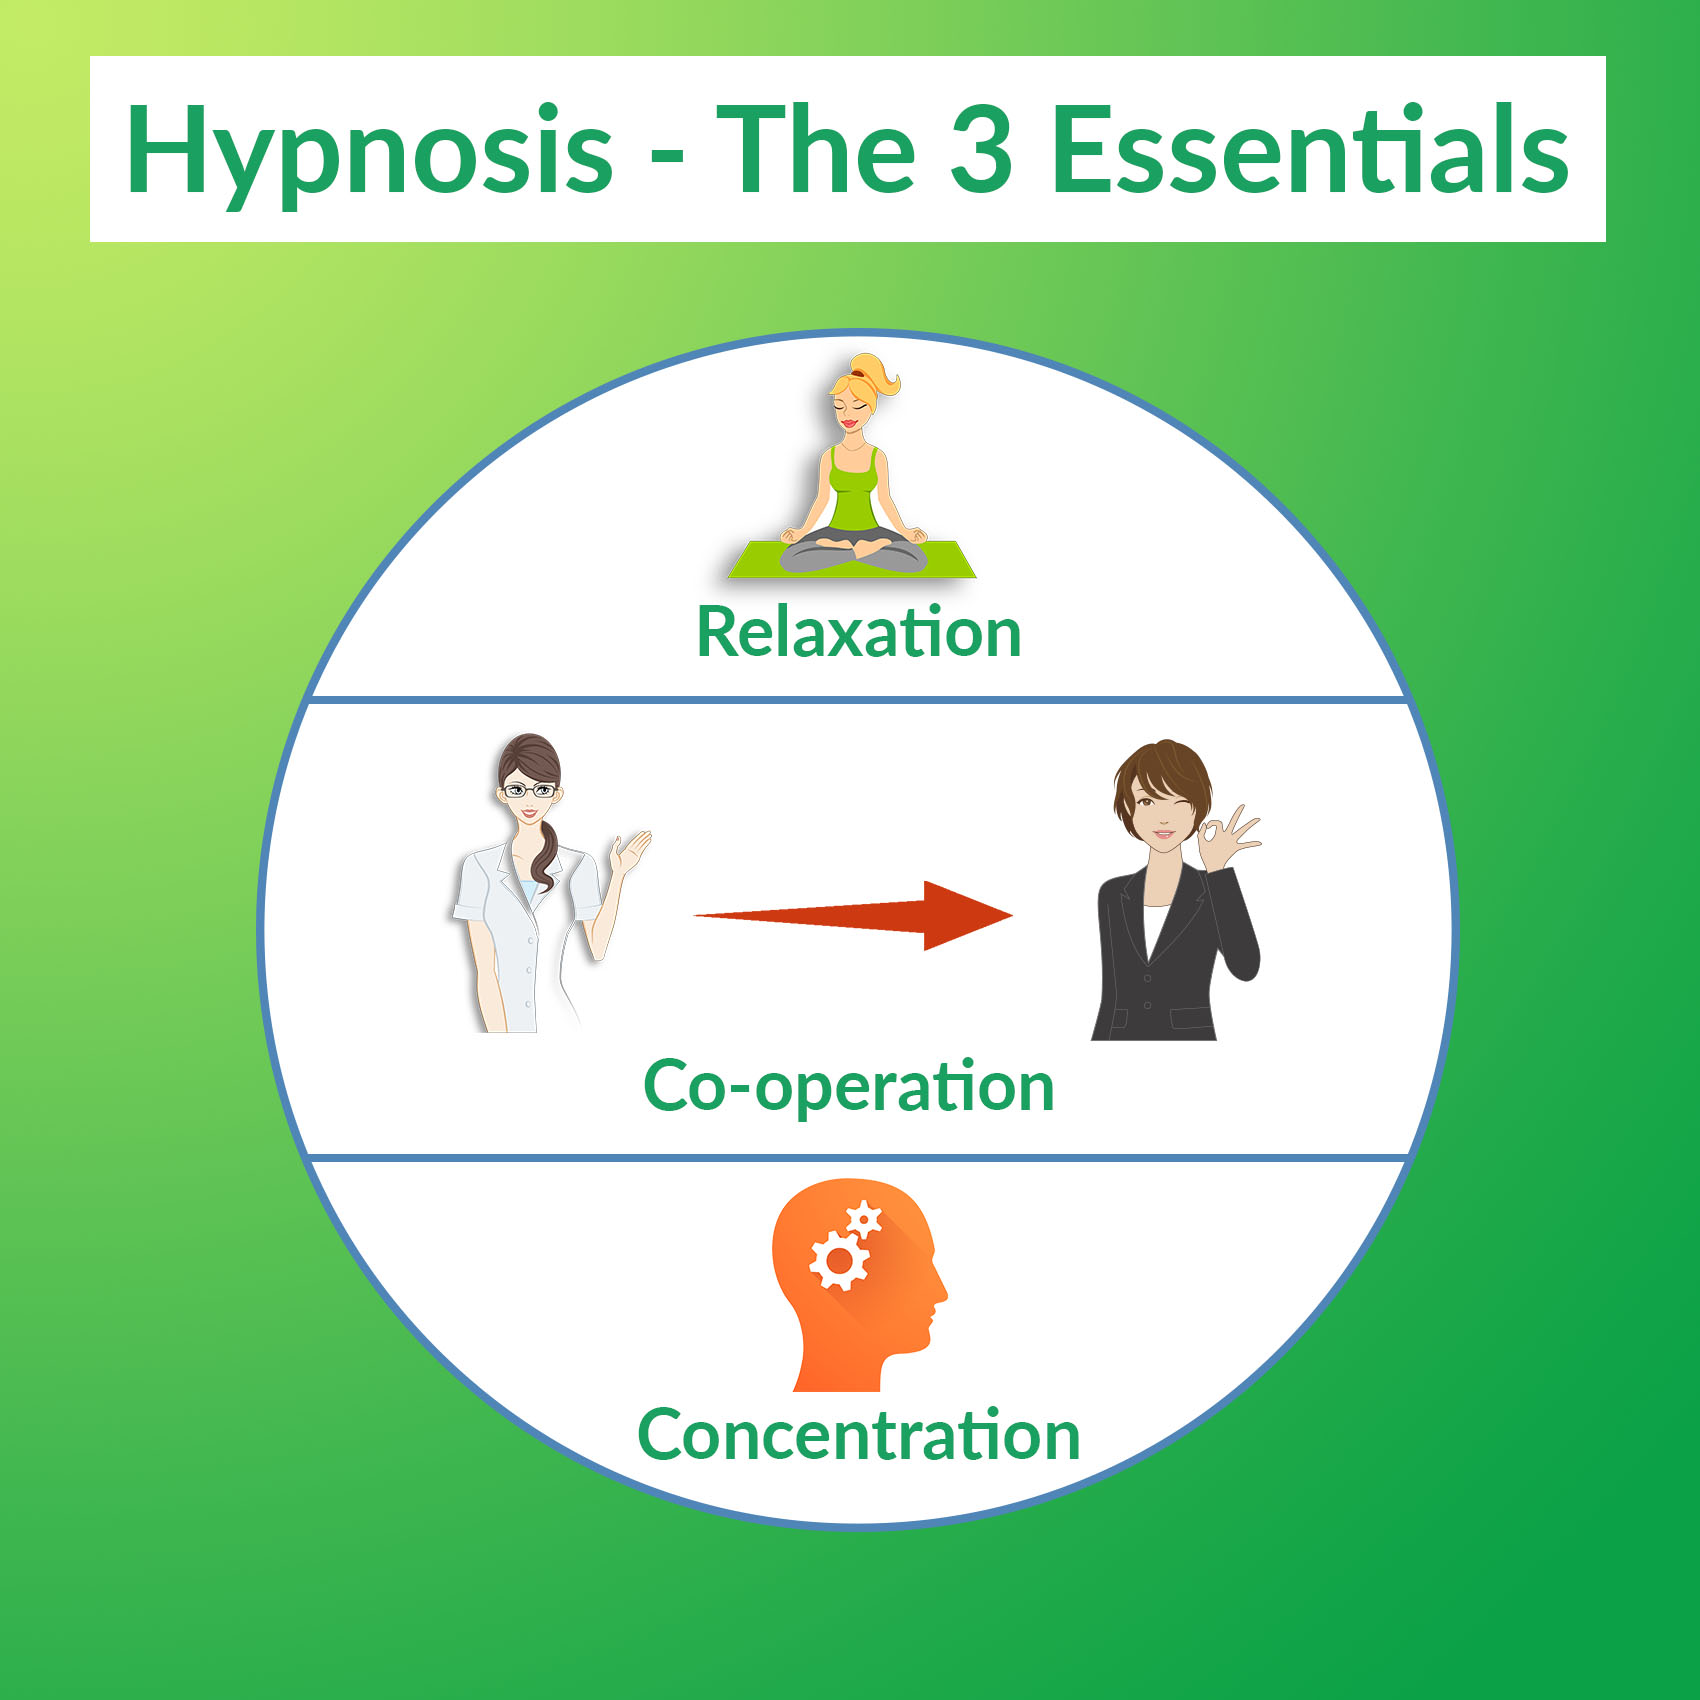 What is required in order for you to be hypnotized